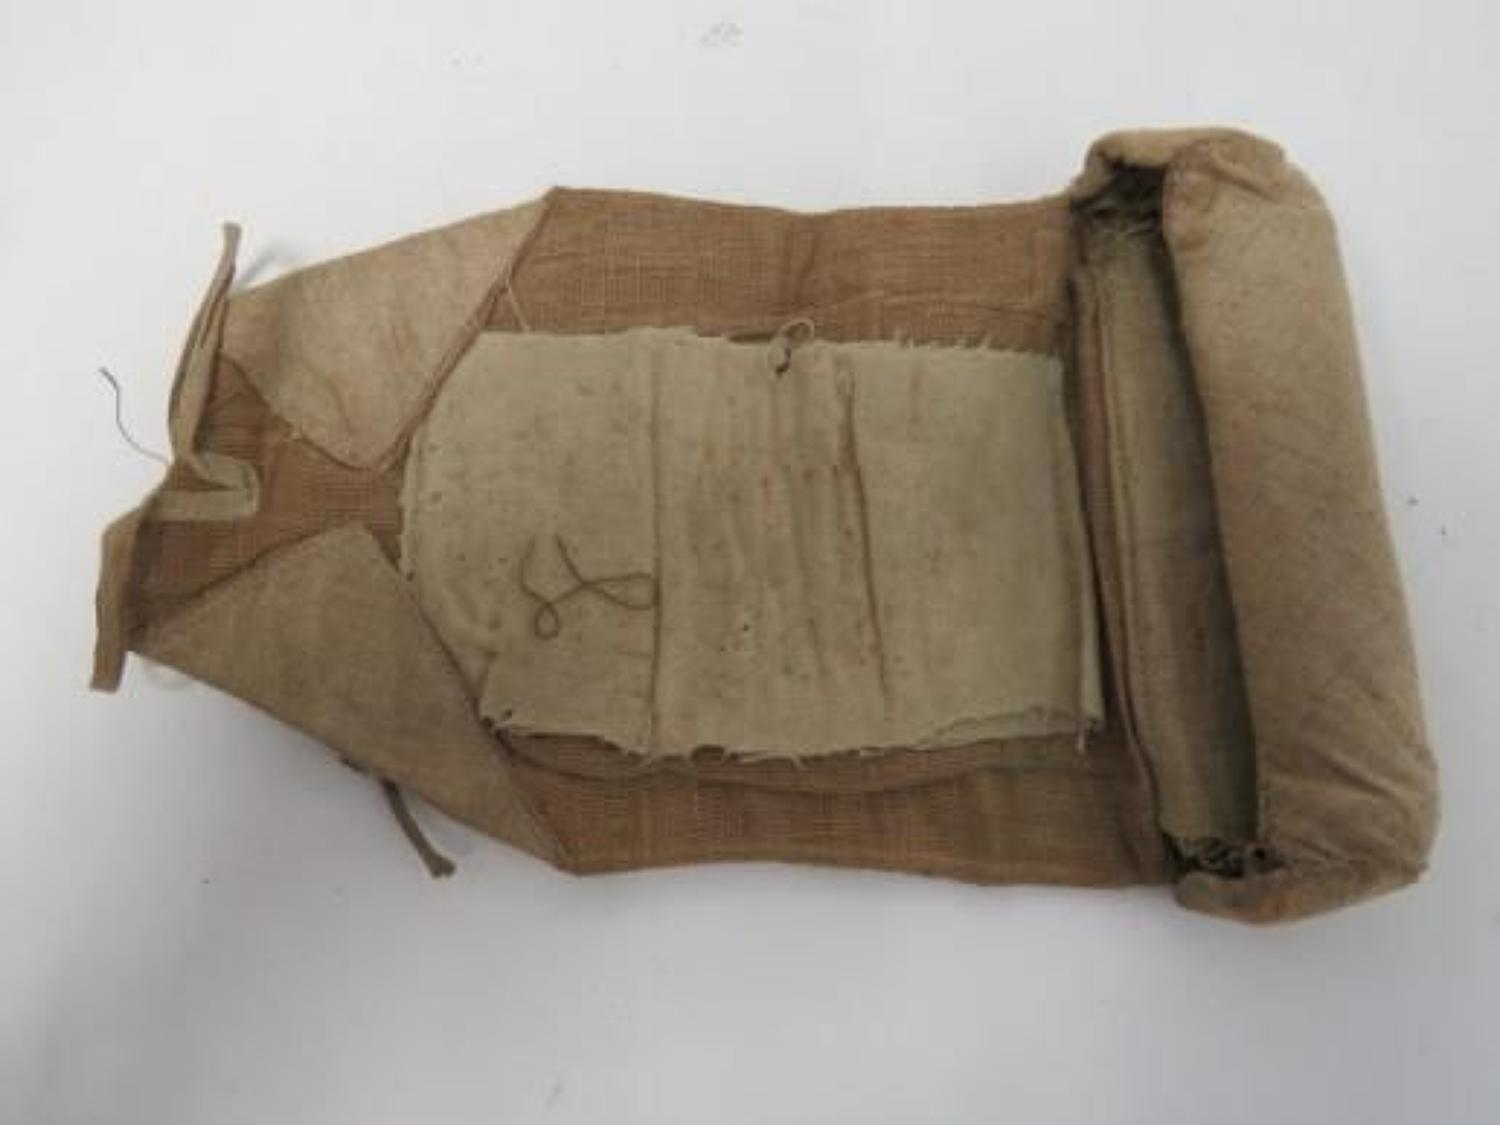 Early 20th  Century Personal Sewing Roll